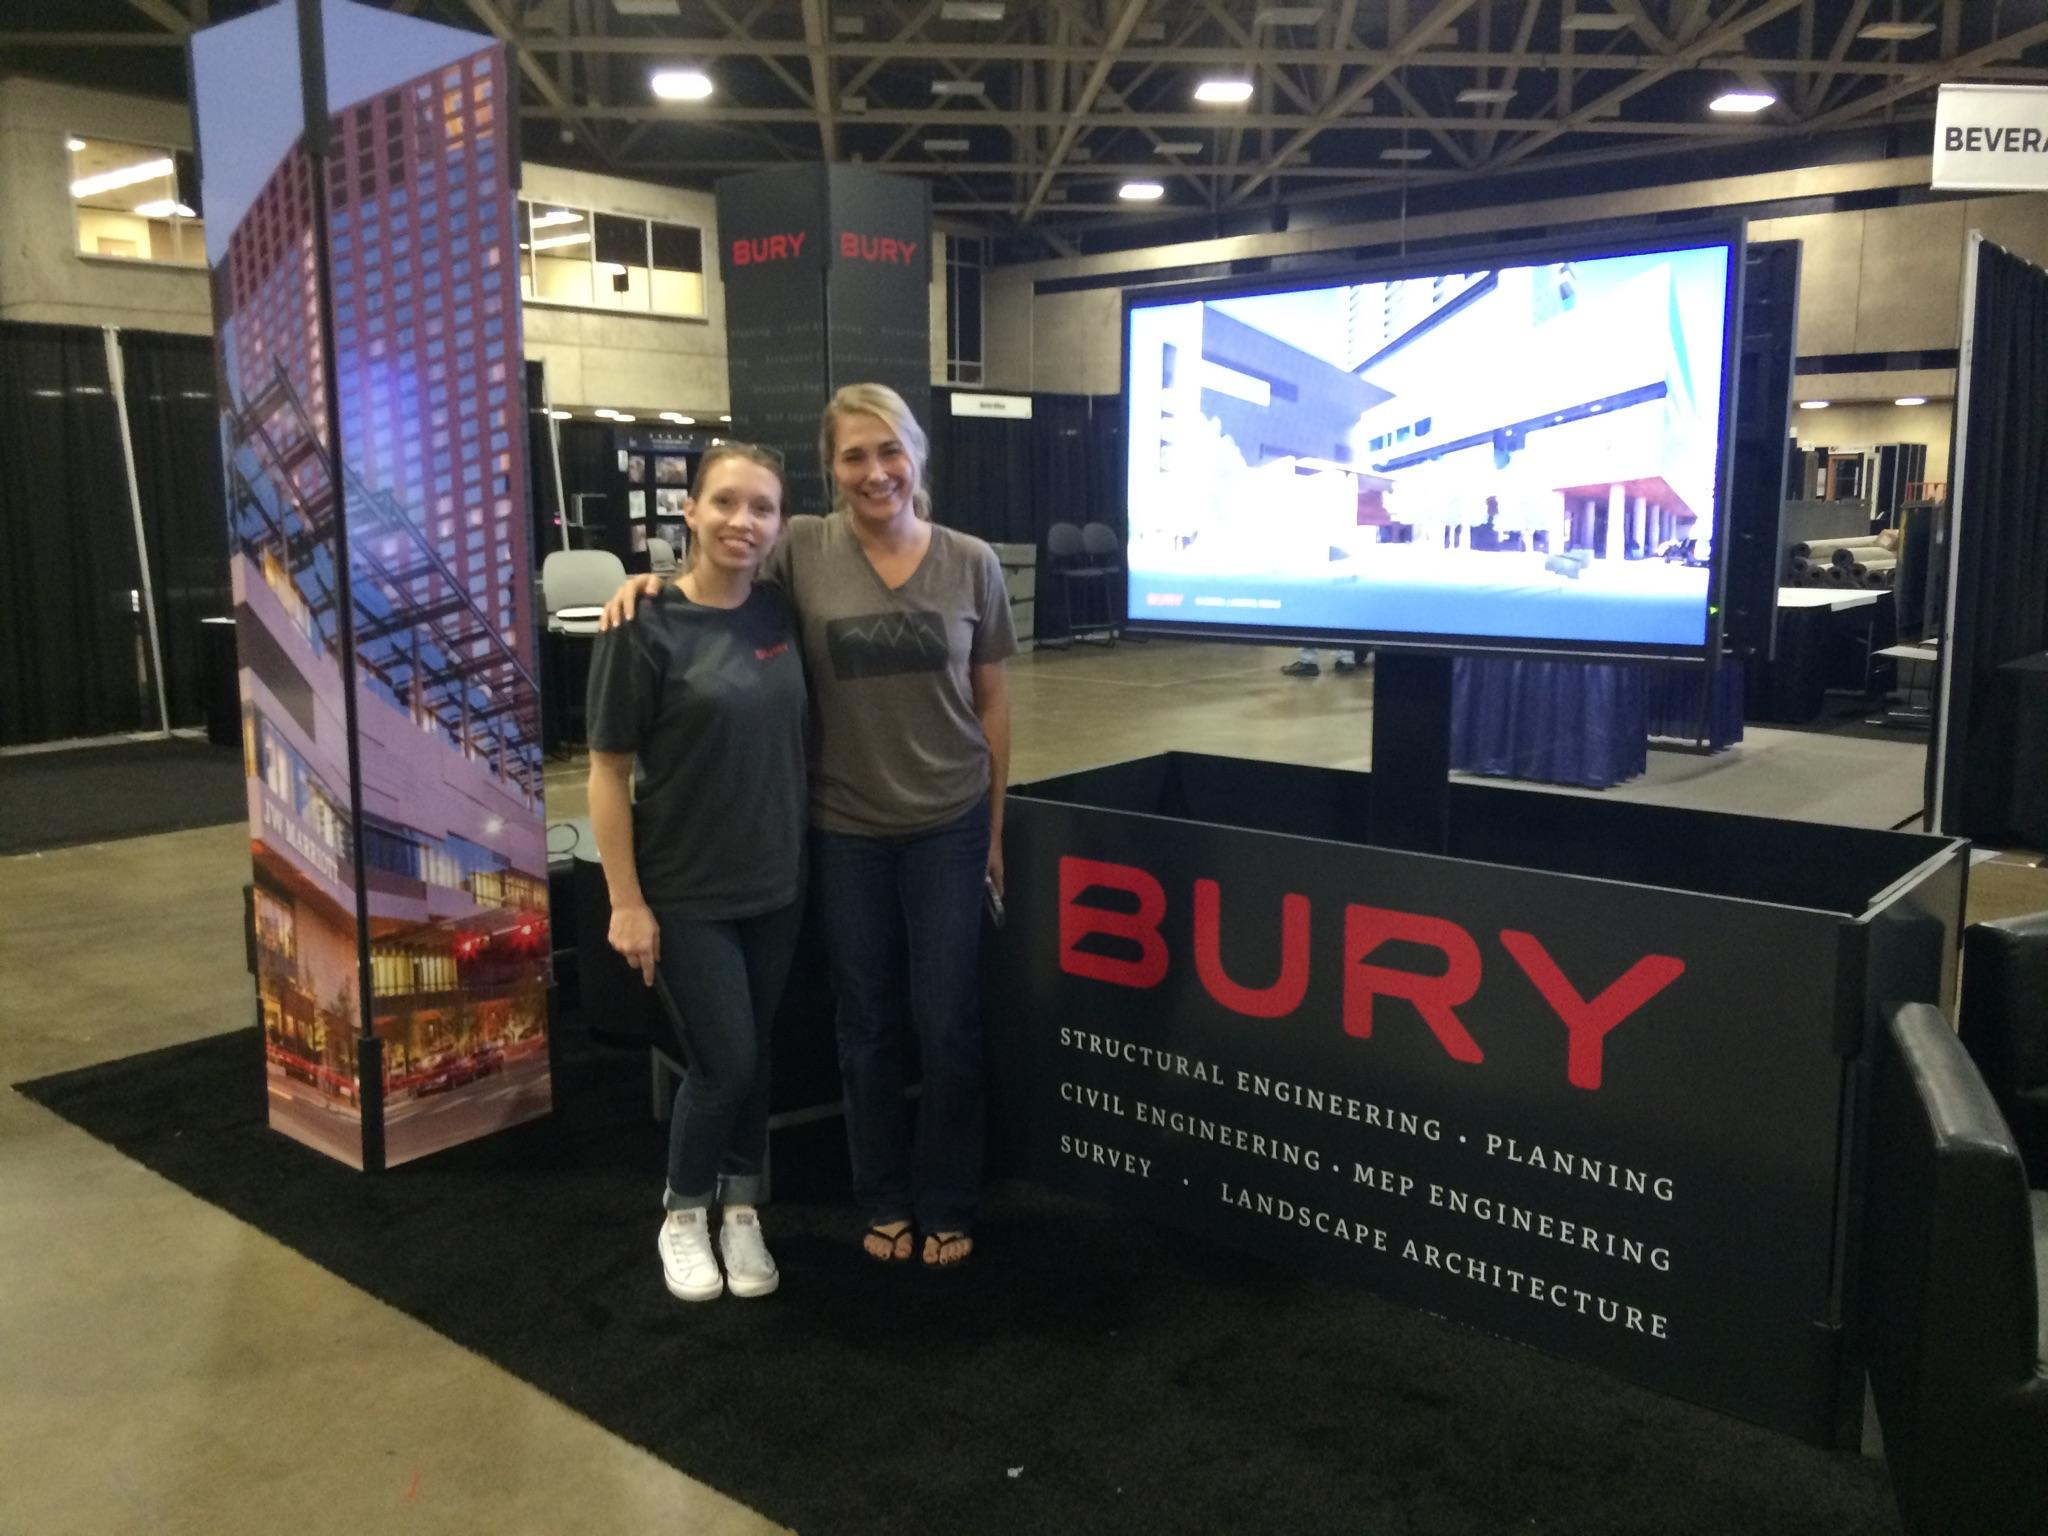 Bury TxA Booth 1